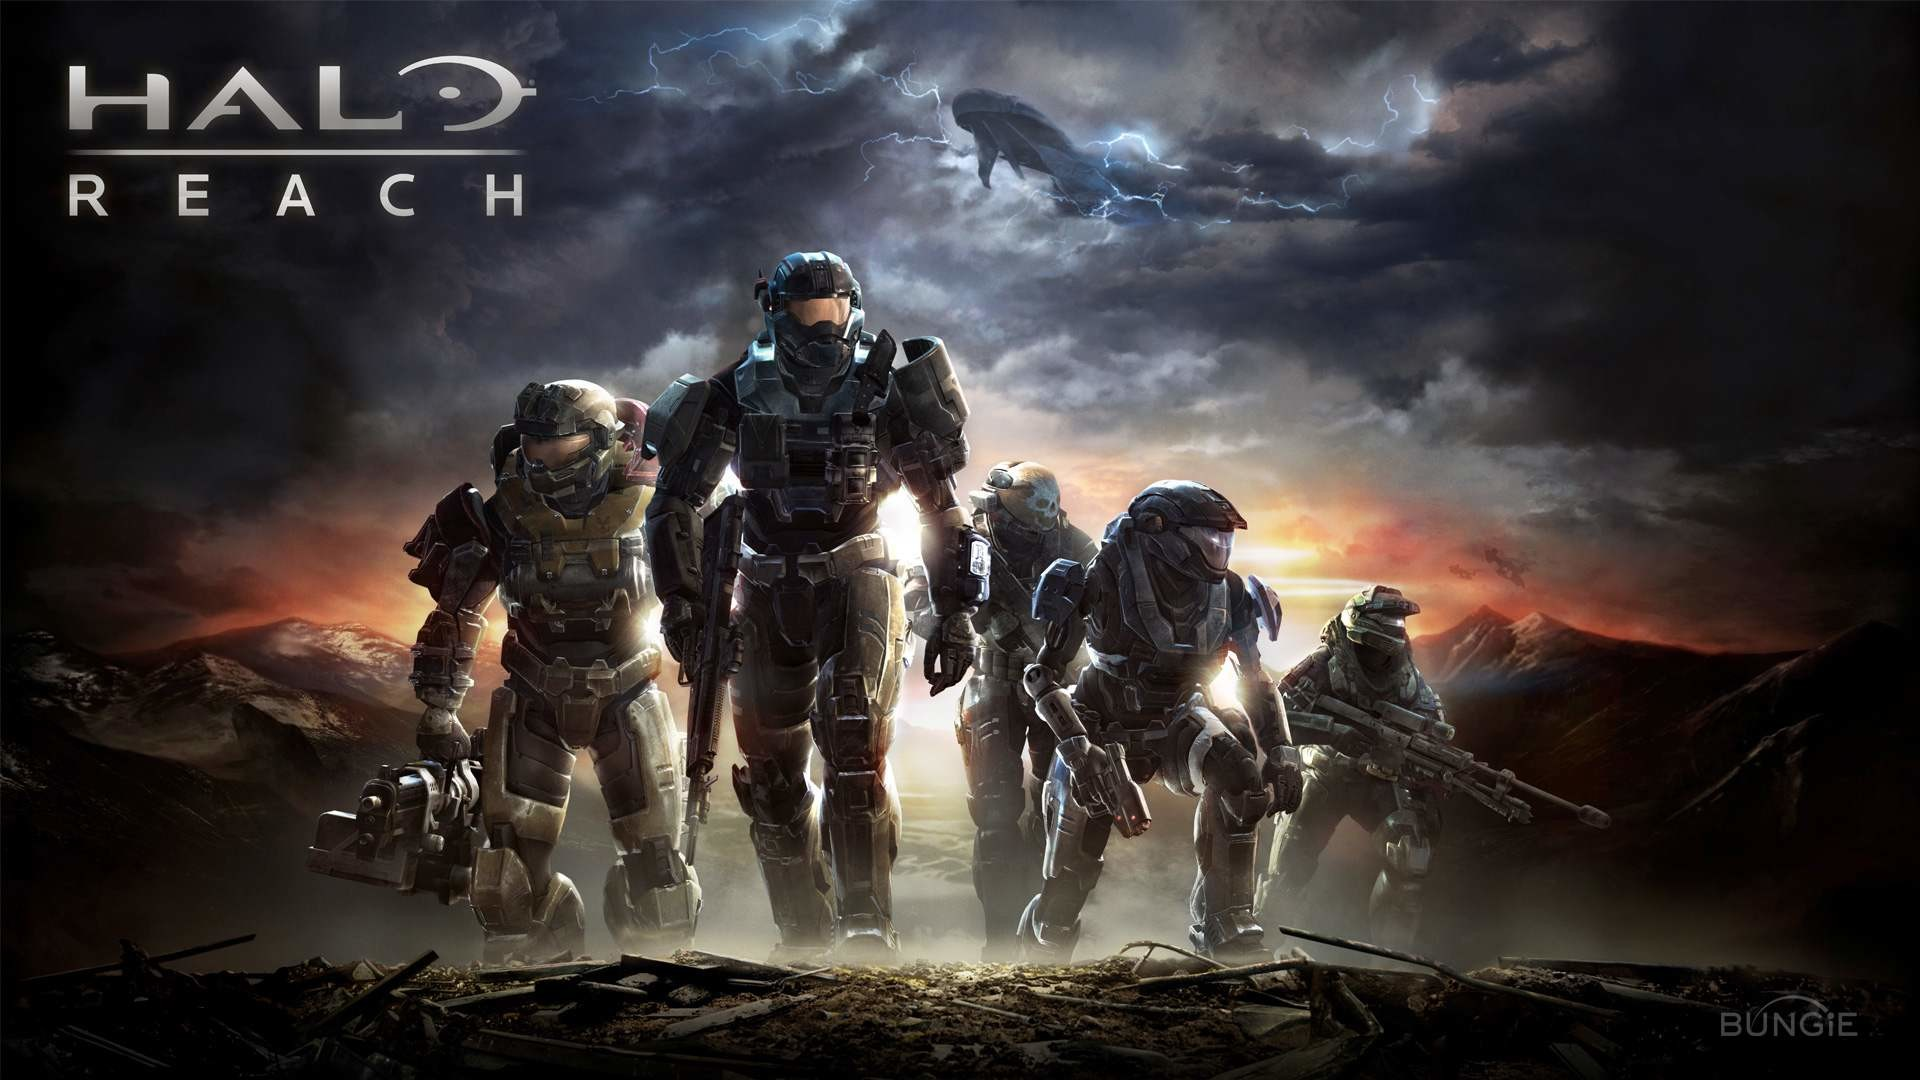 Halo Reach Wallpapers 1080p – Wallpaper Cave   Beautiful Wallpapers    Pinterest   Halo reach, Wallpaper and Wallpaper art